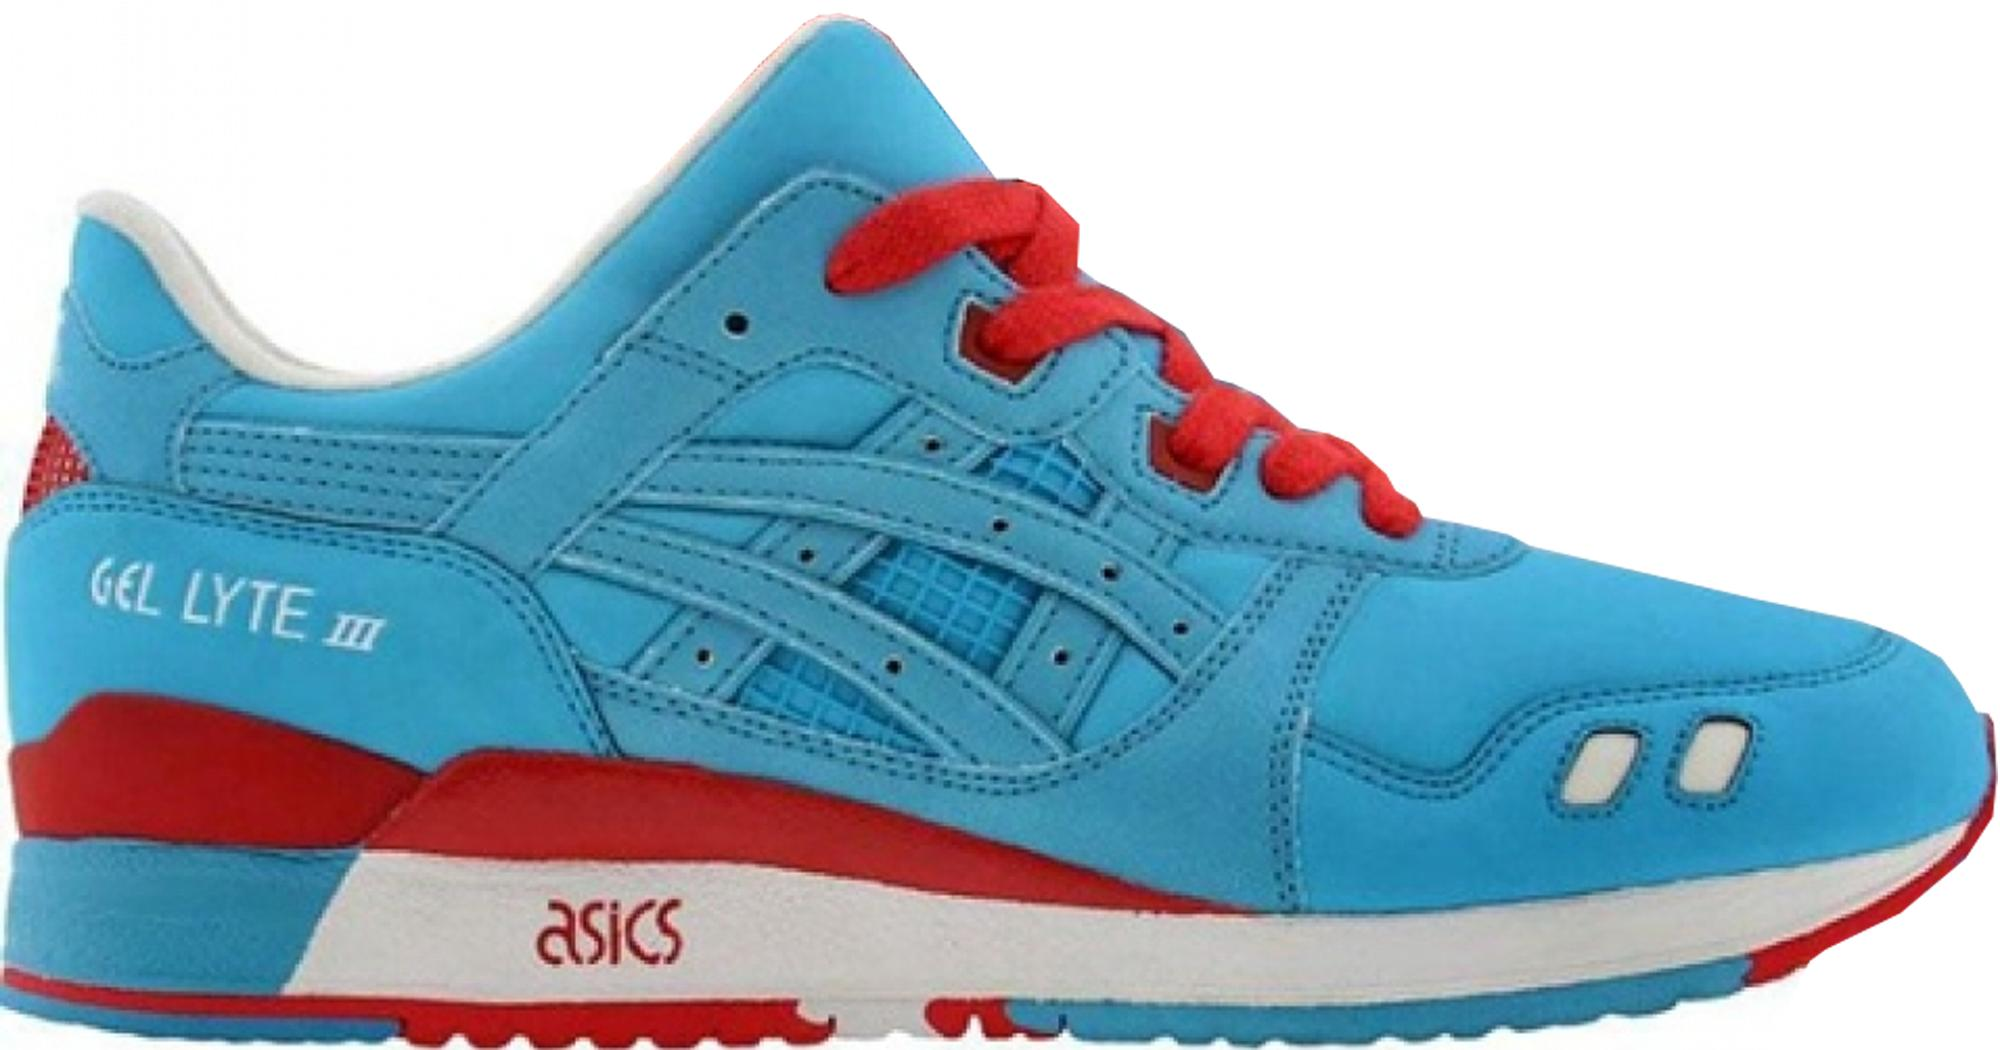 473beaa2 Asics - Gel-lyte Iii Bait Blue Ring for Men - Lyst. View fullscreen